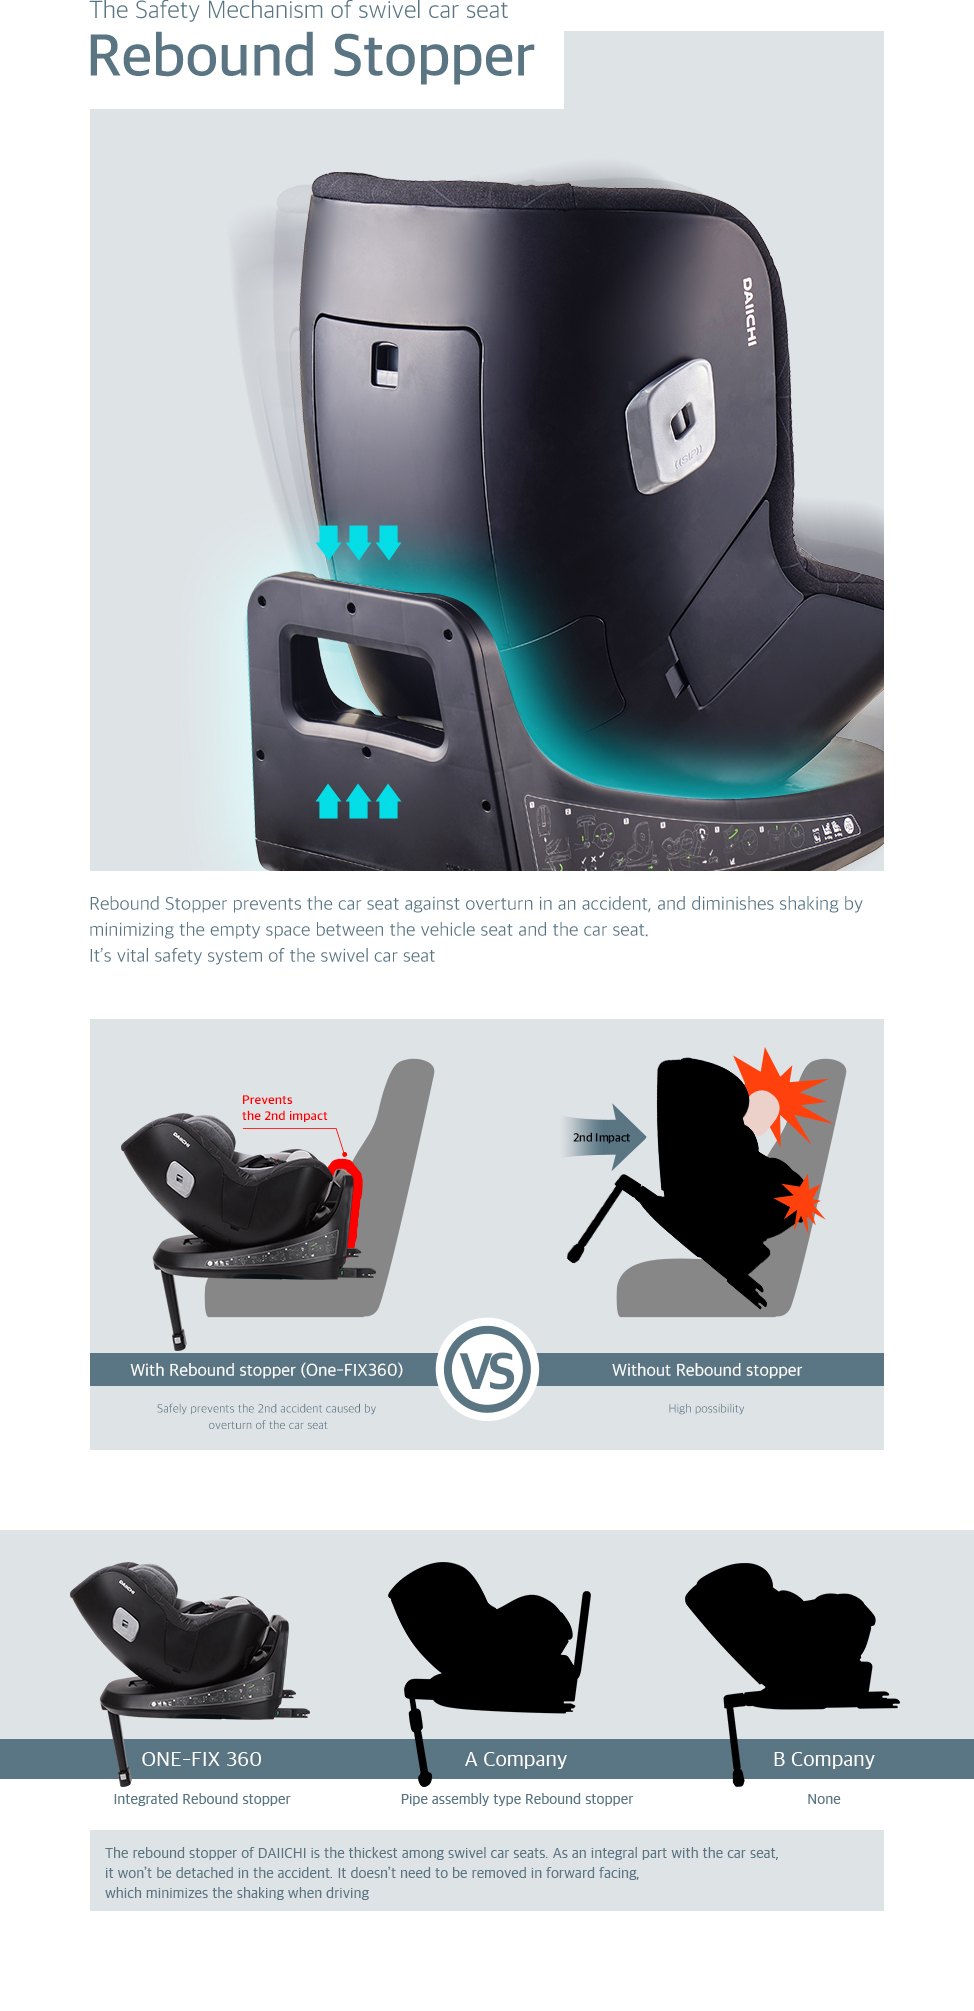 Rebound Stopper prevents the car seat against overturn in an accident, and diminishes shaking by minimizing the empty space between the vehicle seat and the car seat. It's vital safety system of the swivel car seat